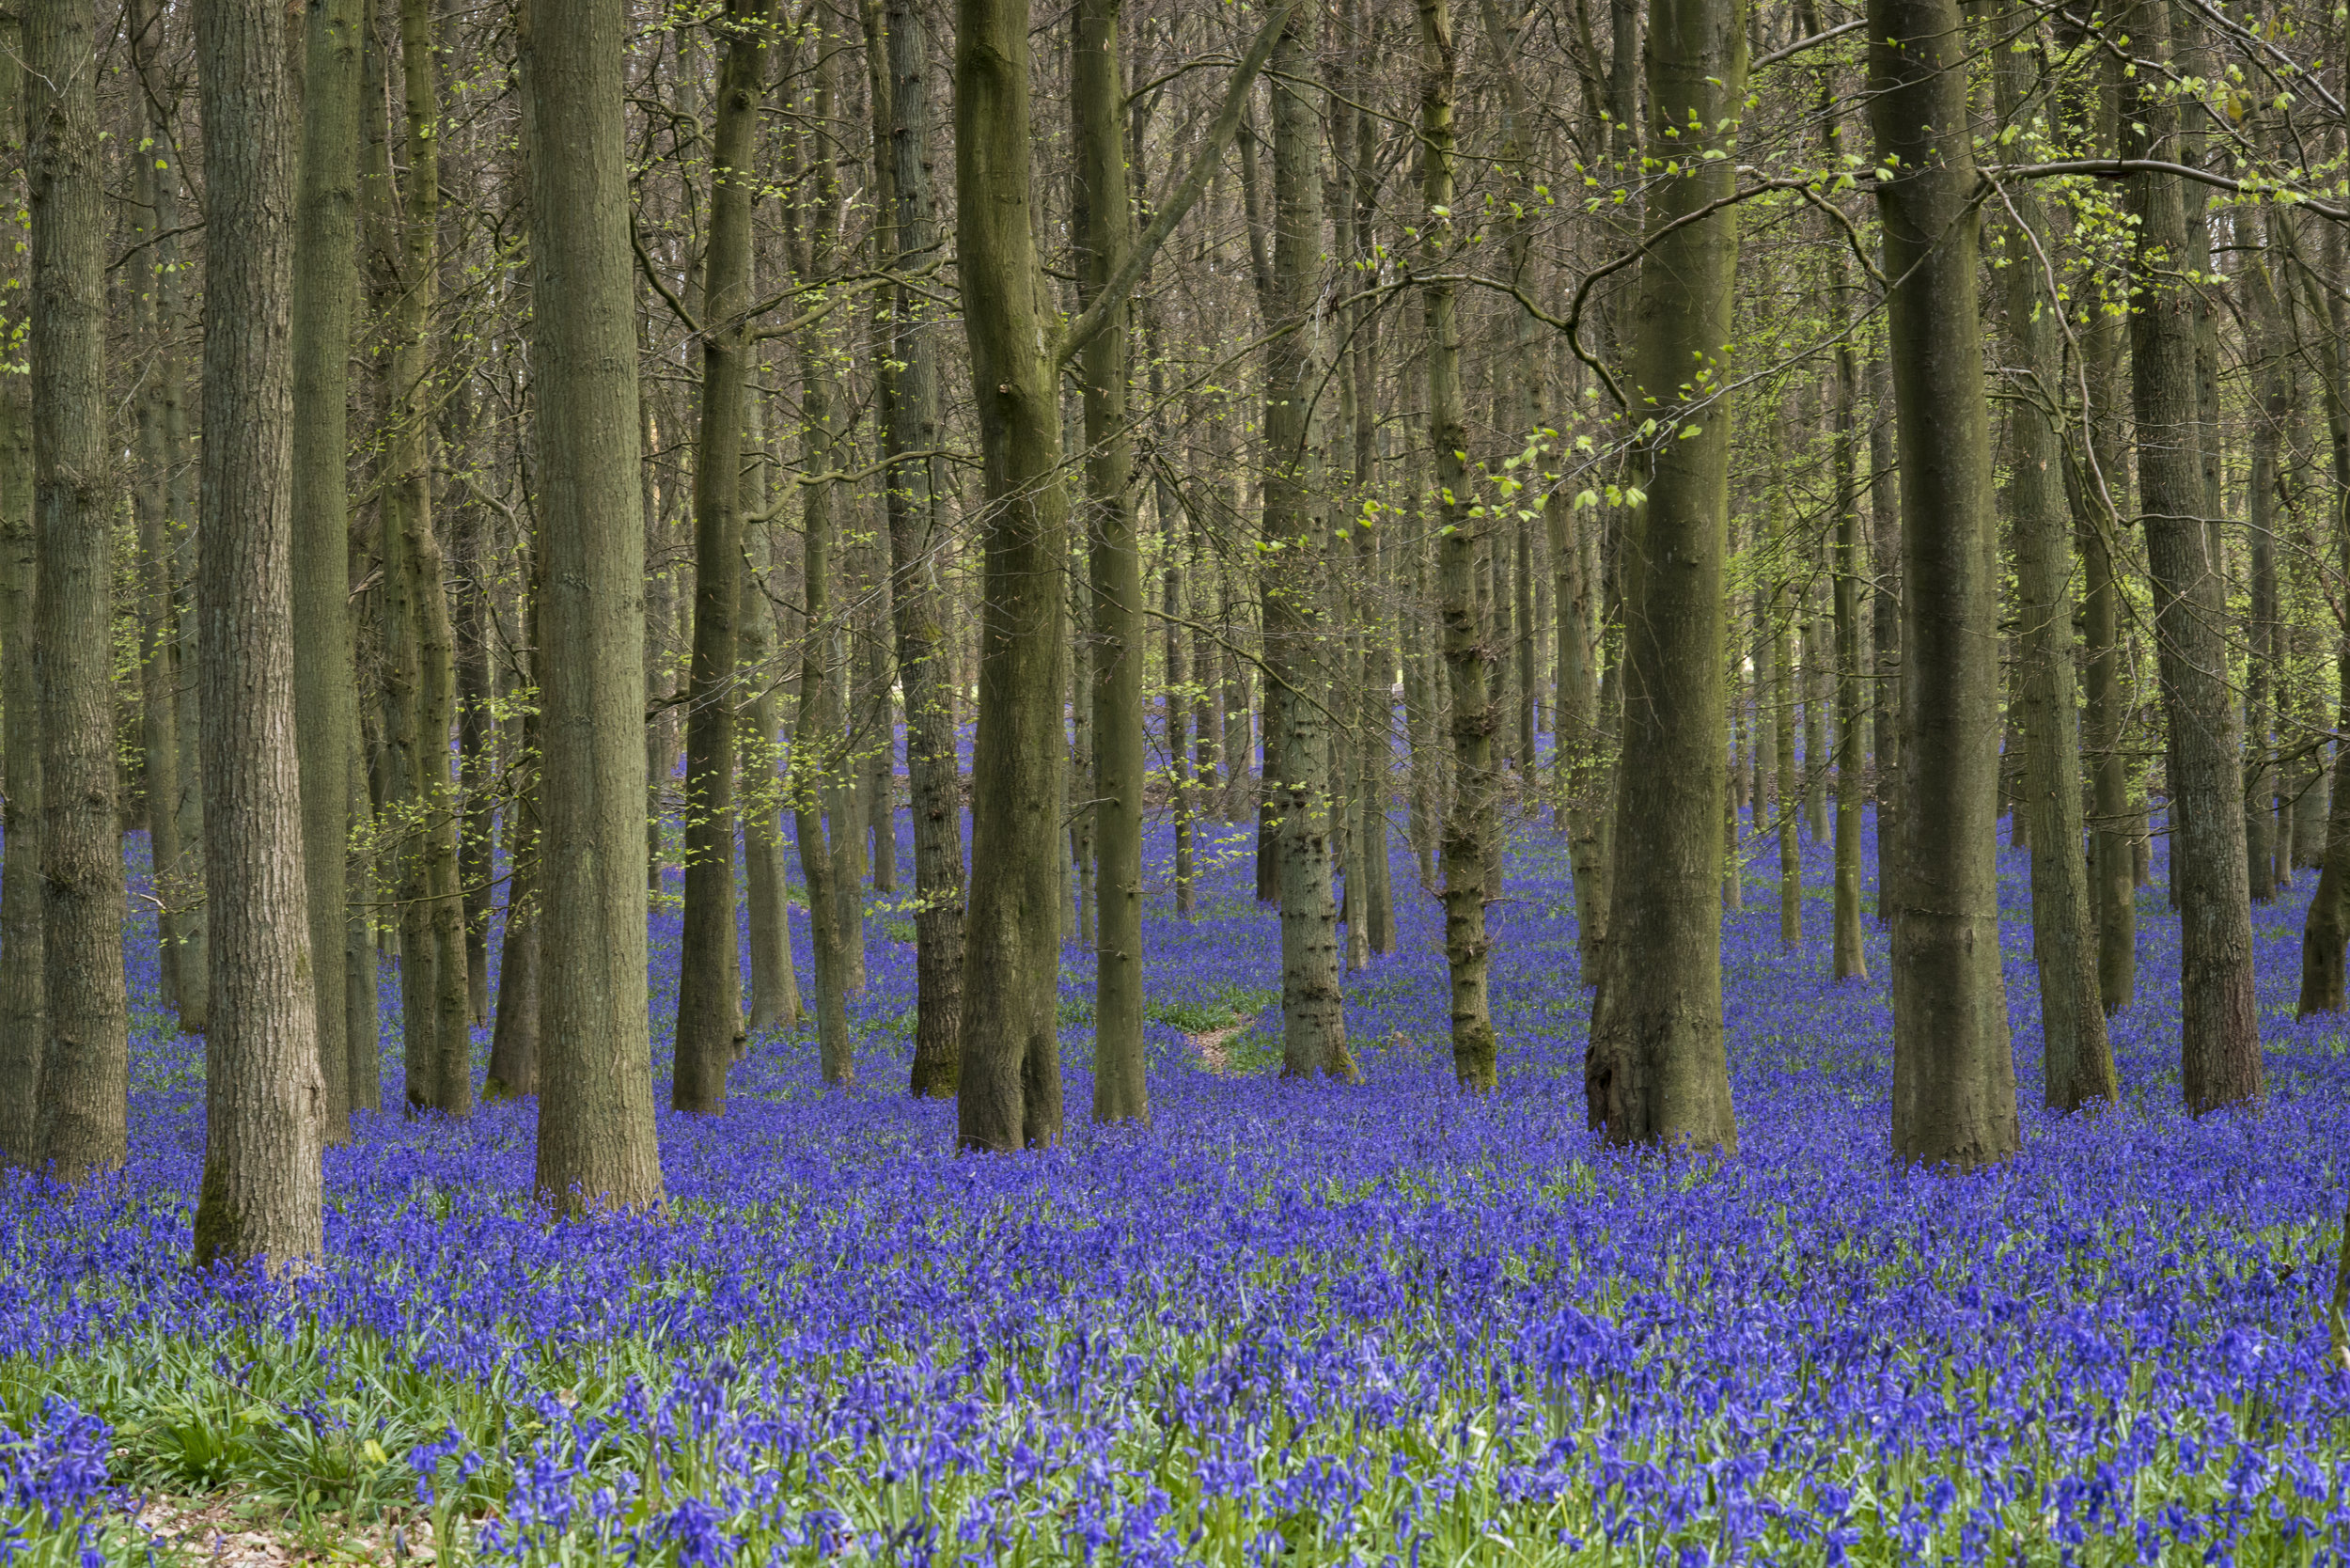 Springtime bluebells, Herts, UK